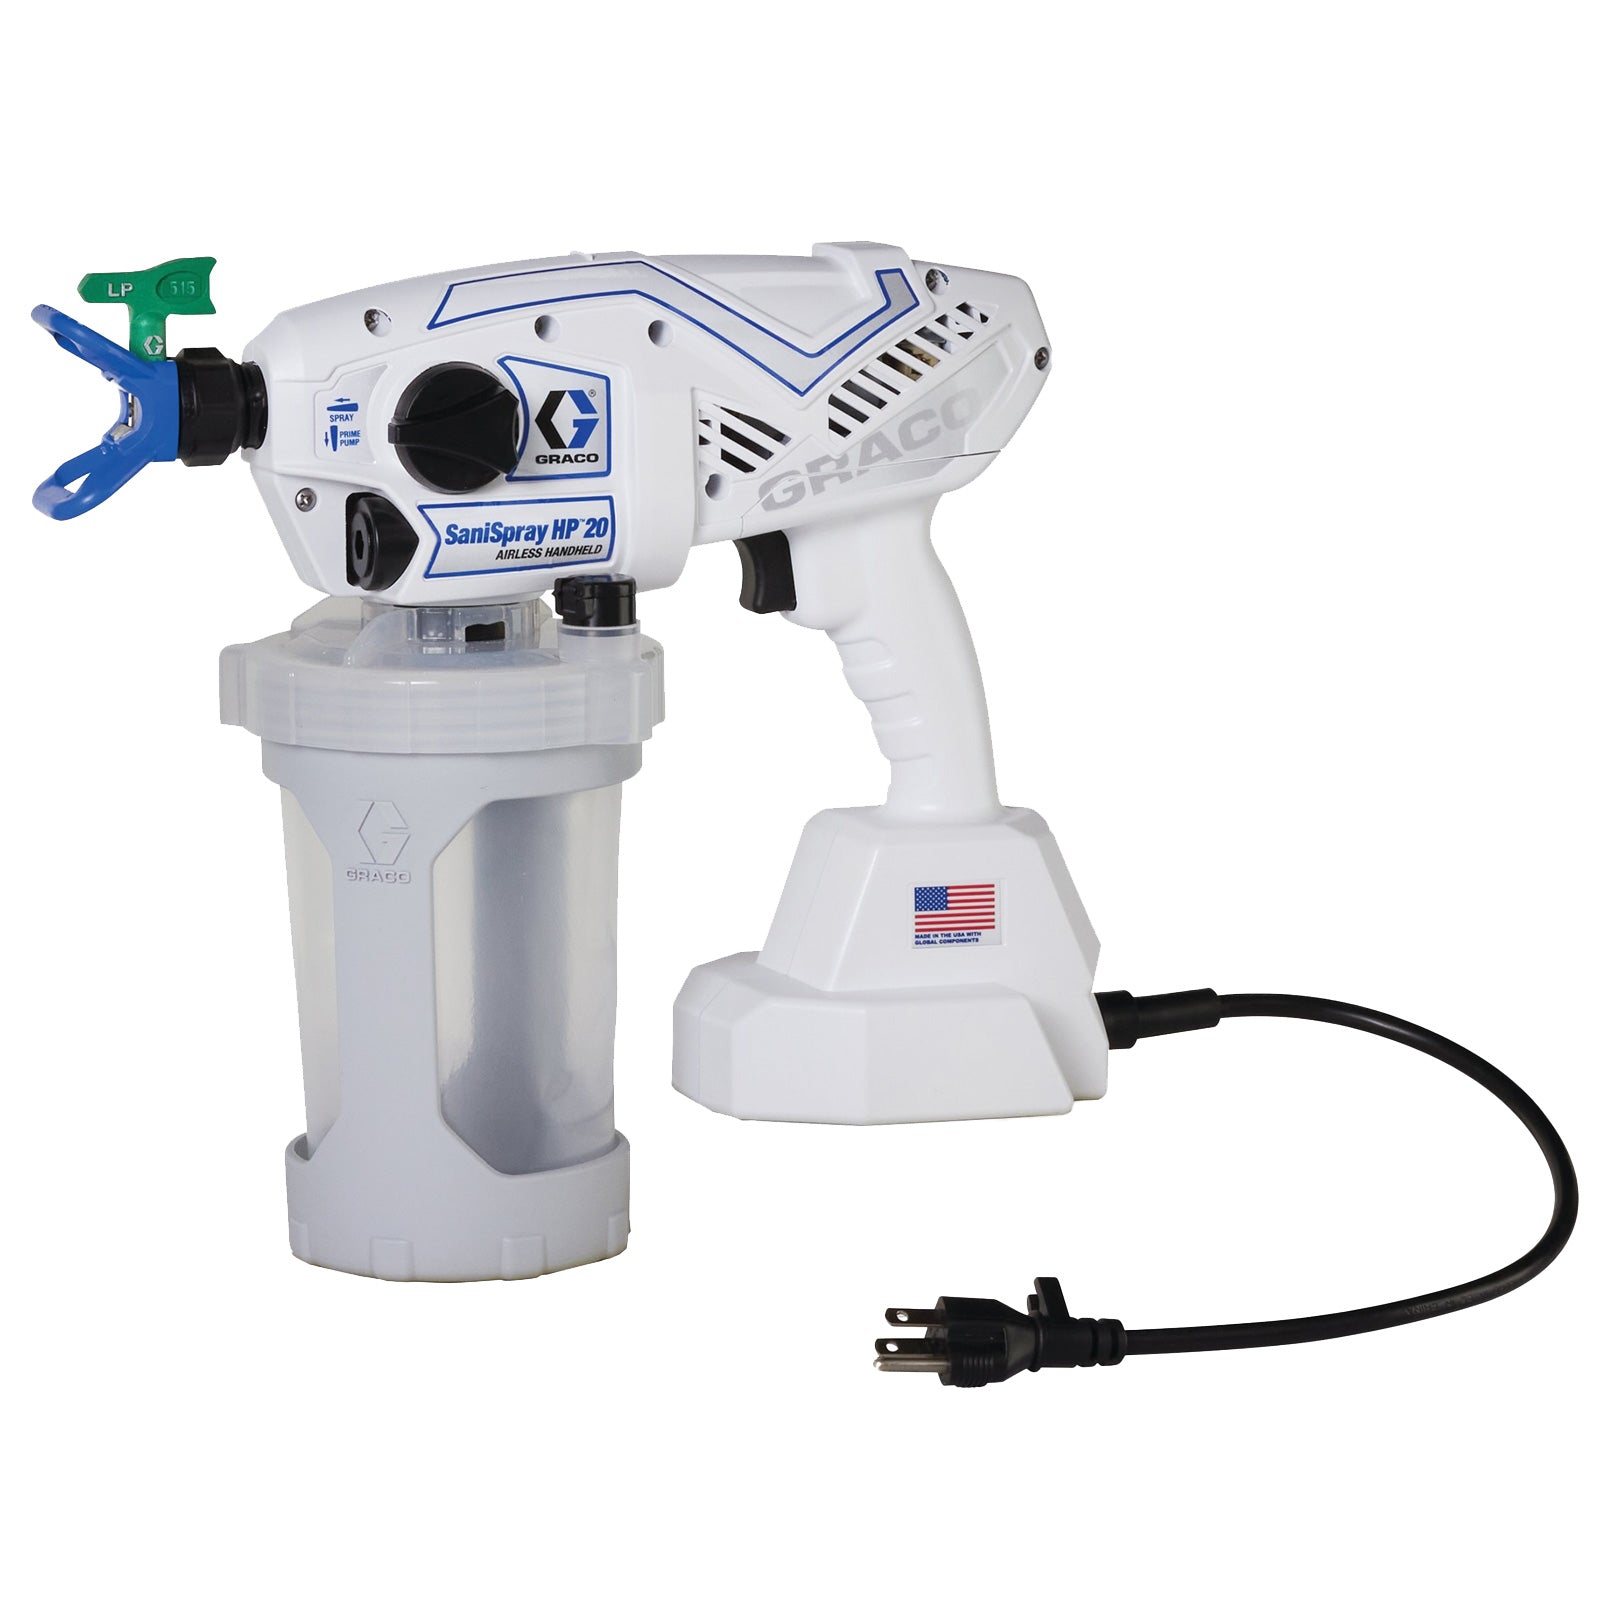 SaniSpray HP 20 - Corded Handheld Sprayer